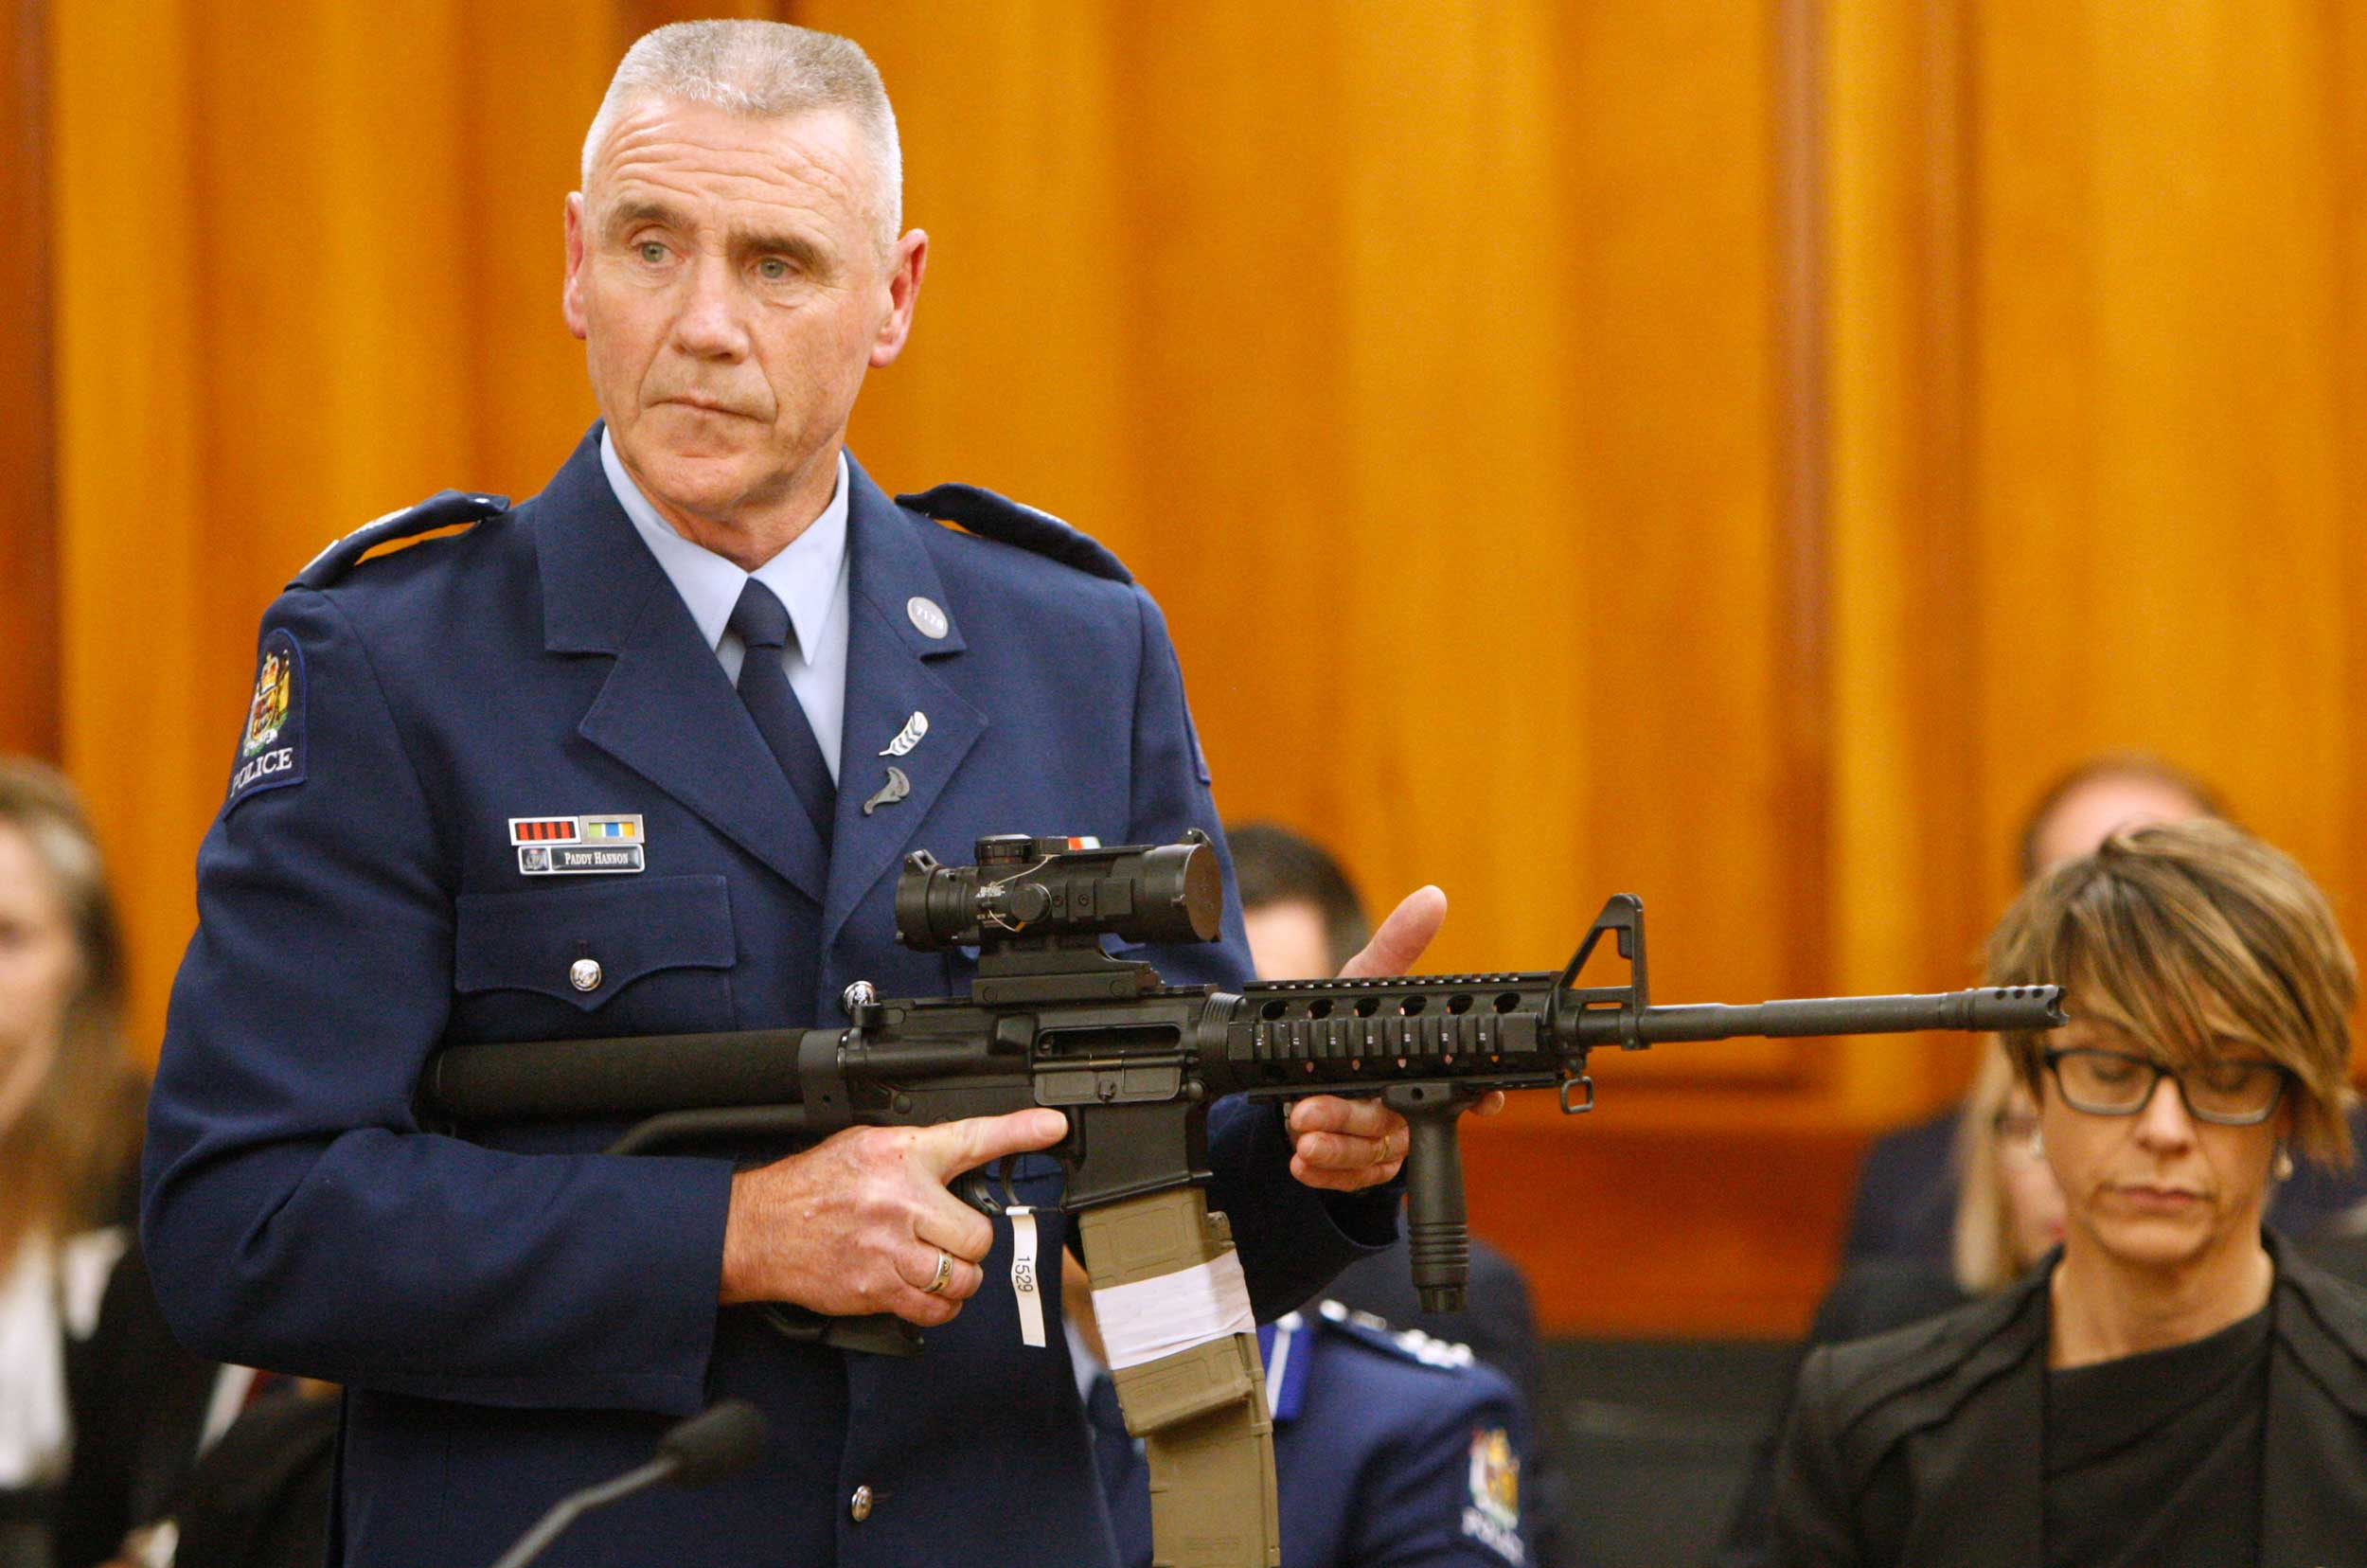 Police senior Sgt. Paddy Hannan shows New Zealand lawmakers an AR-15 style rifle, similar to one of the weapons a gunman used to slaughter 50 people at two mosques, in Wellington, on April 2, 2019.